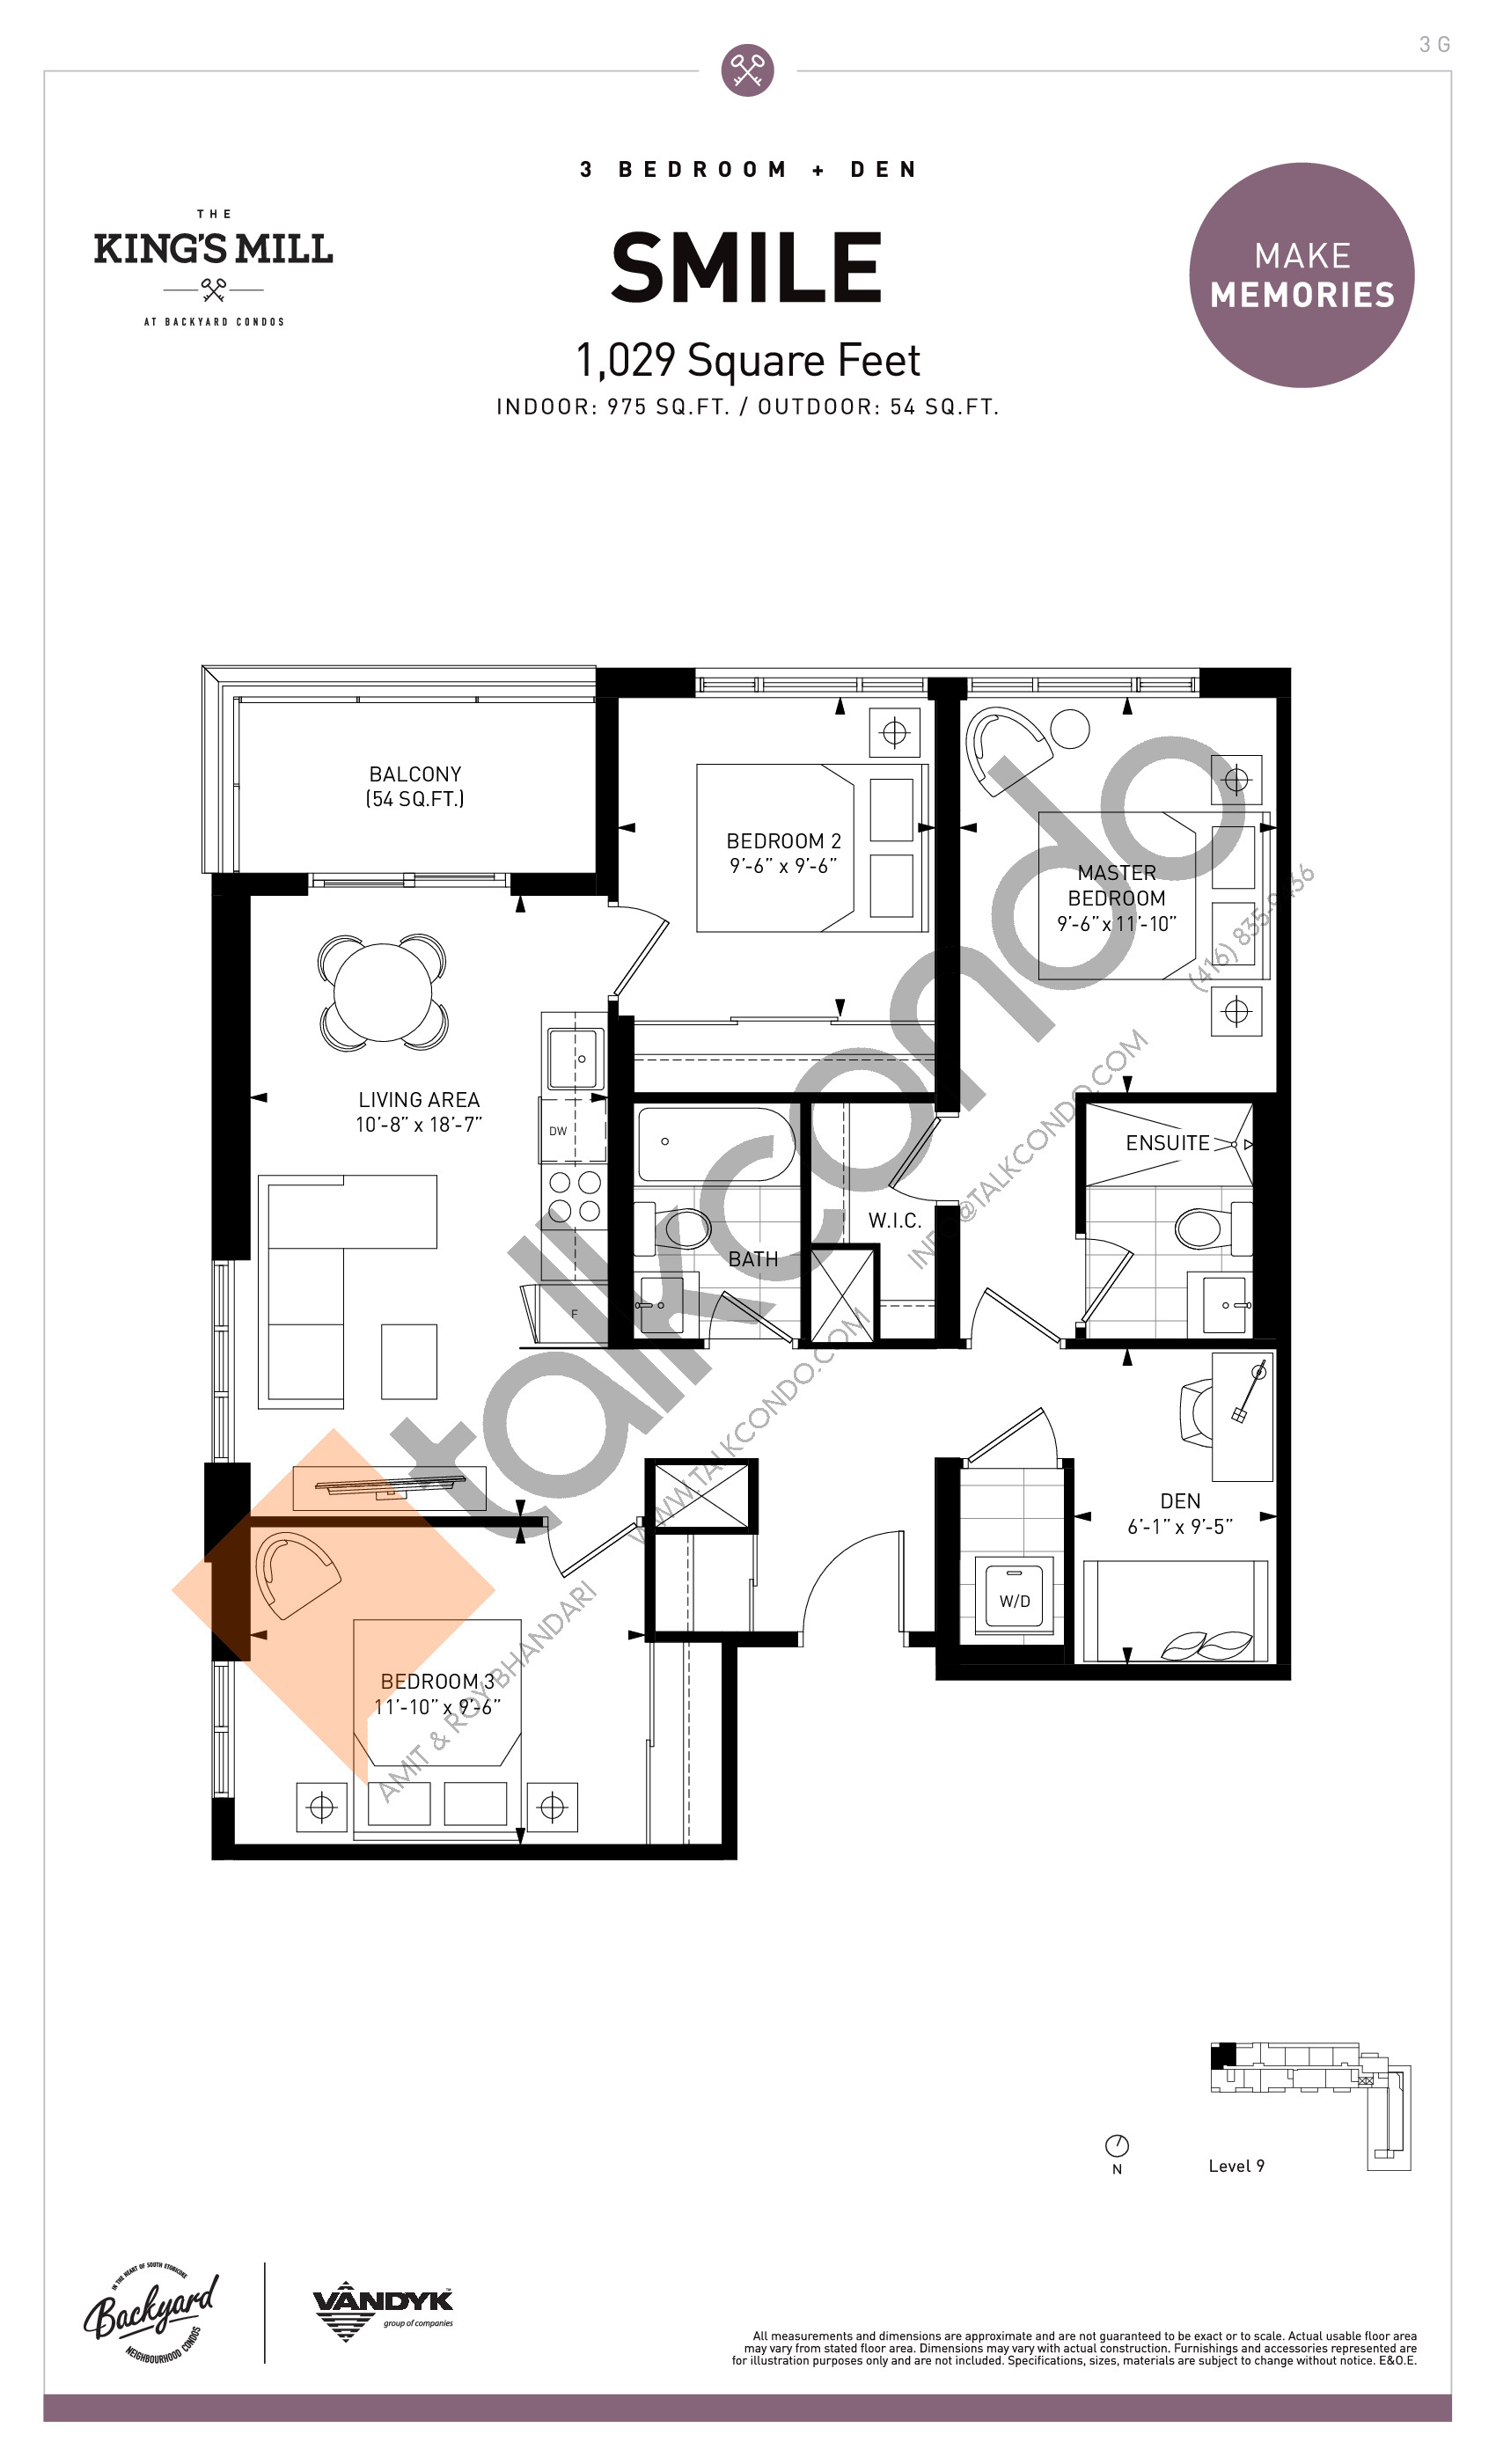 Smile Floor Plan at The King's Mill Condos - 975 sq.ft